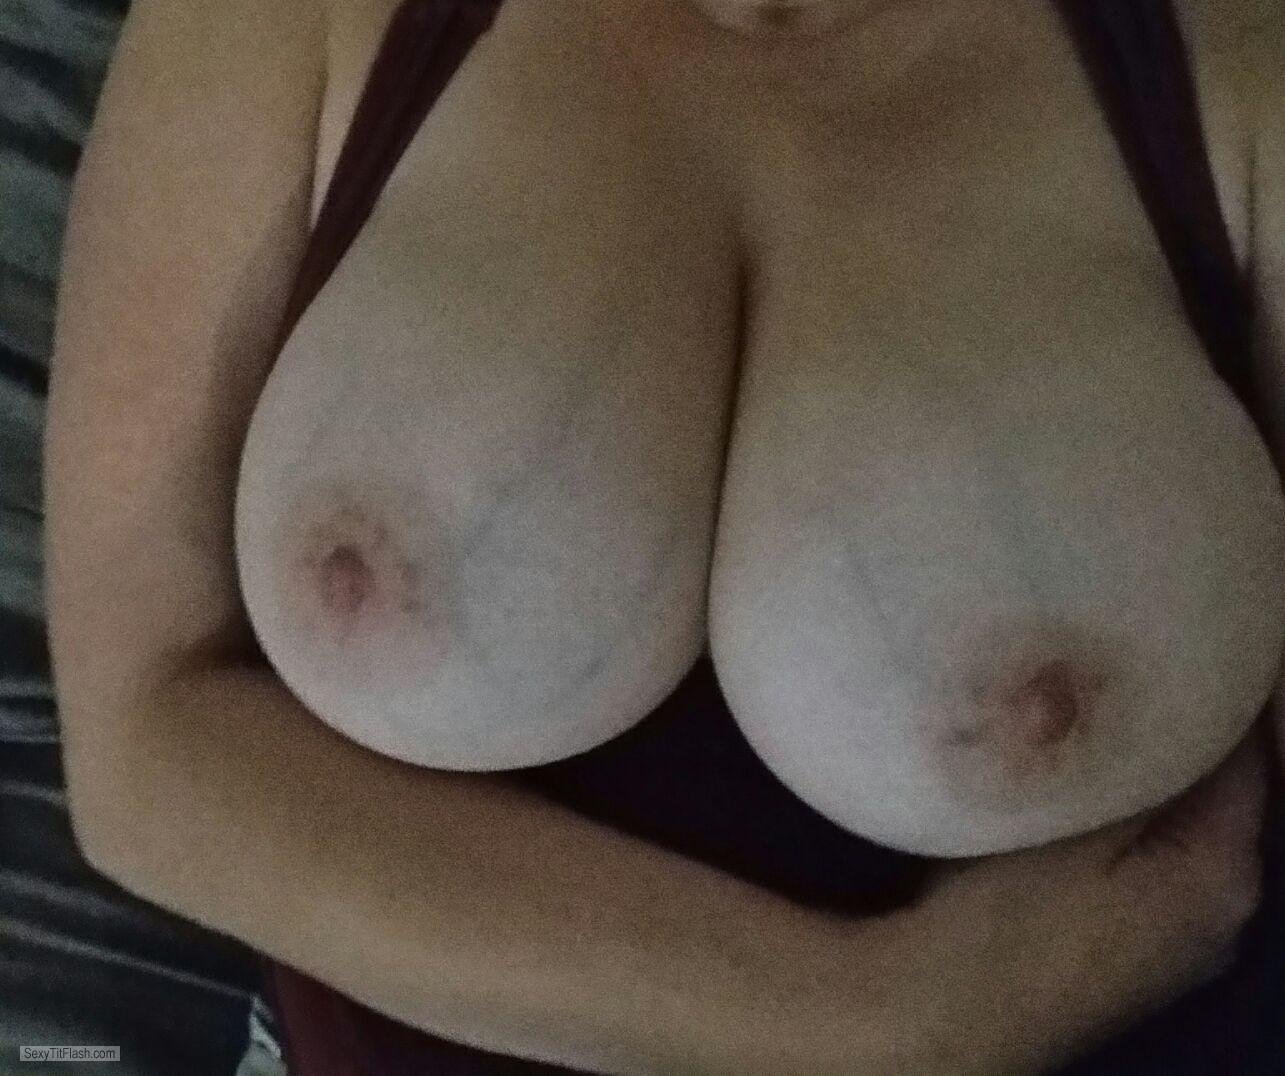 my very big tits (selfie) - xxx from united kingdom tit flash id 205262